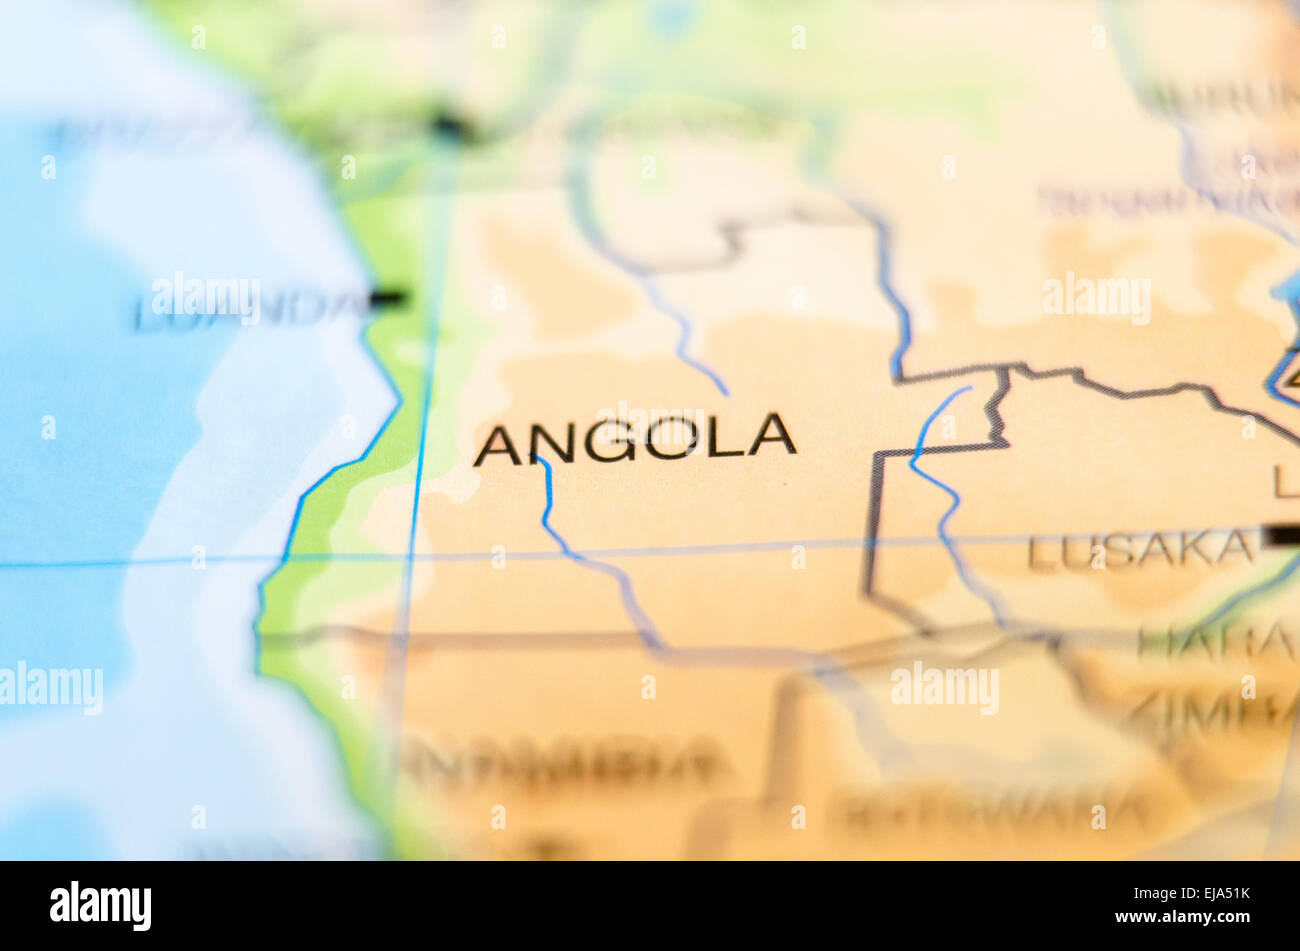 angola country on map - Stock Image